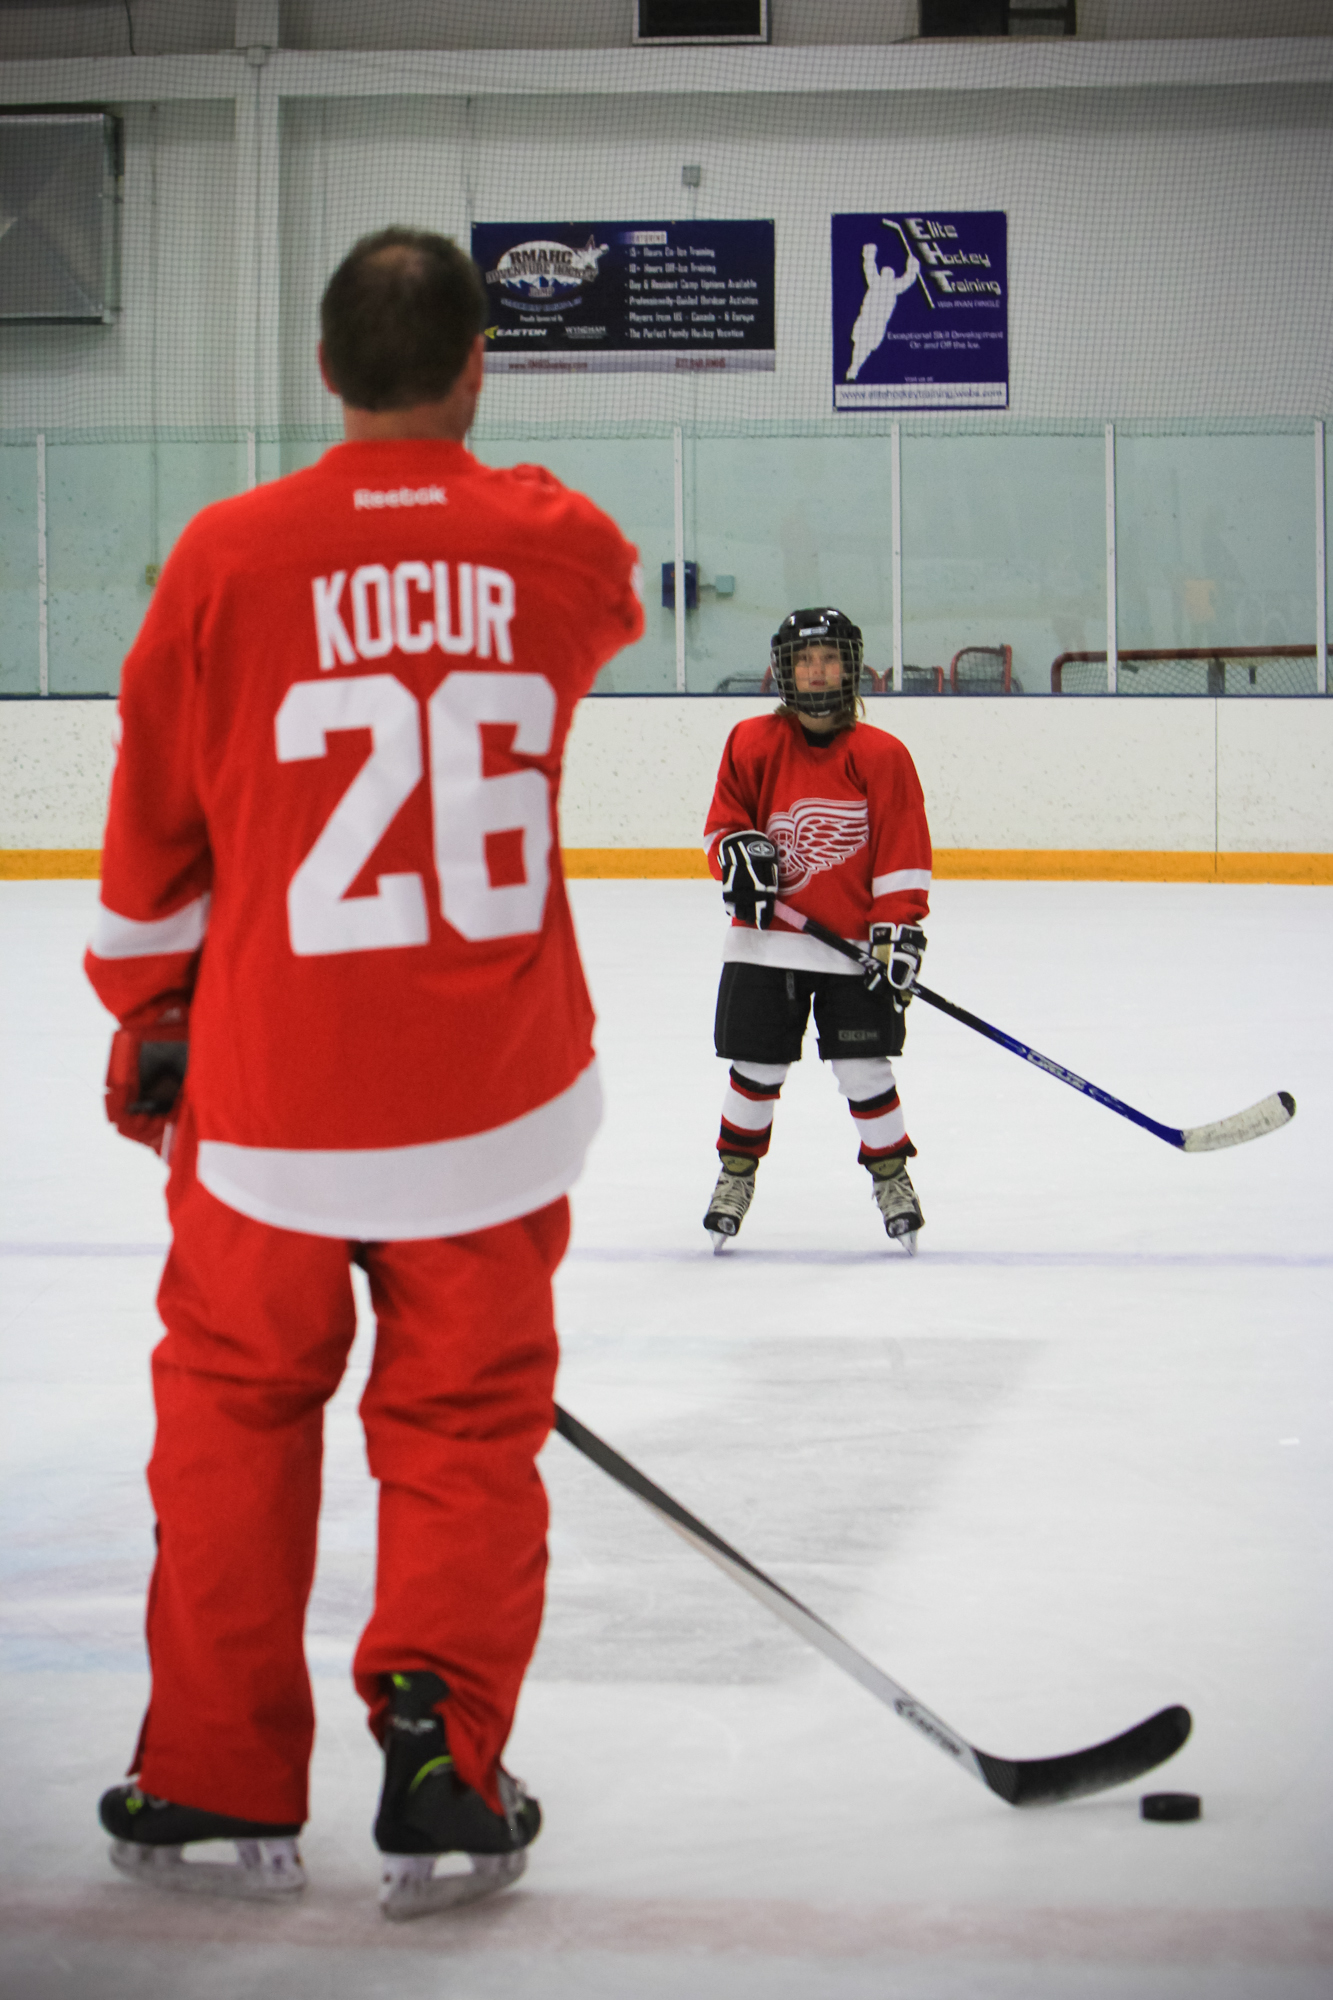 Joe Kocur and Margaux Shea.jpg